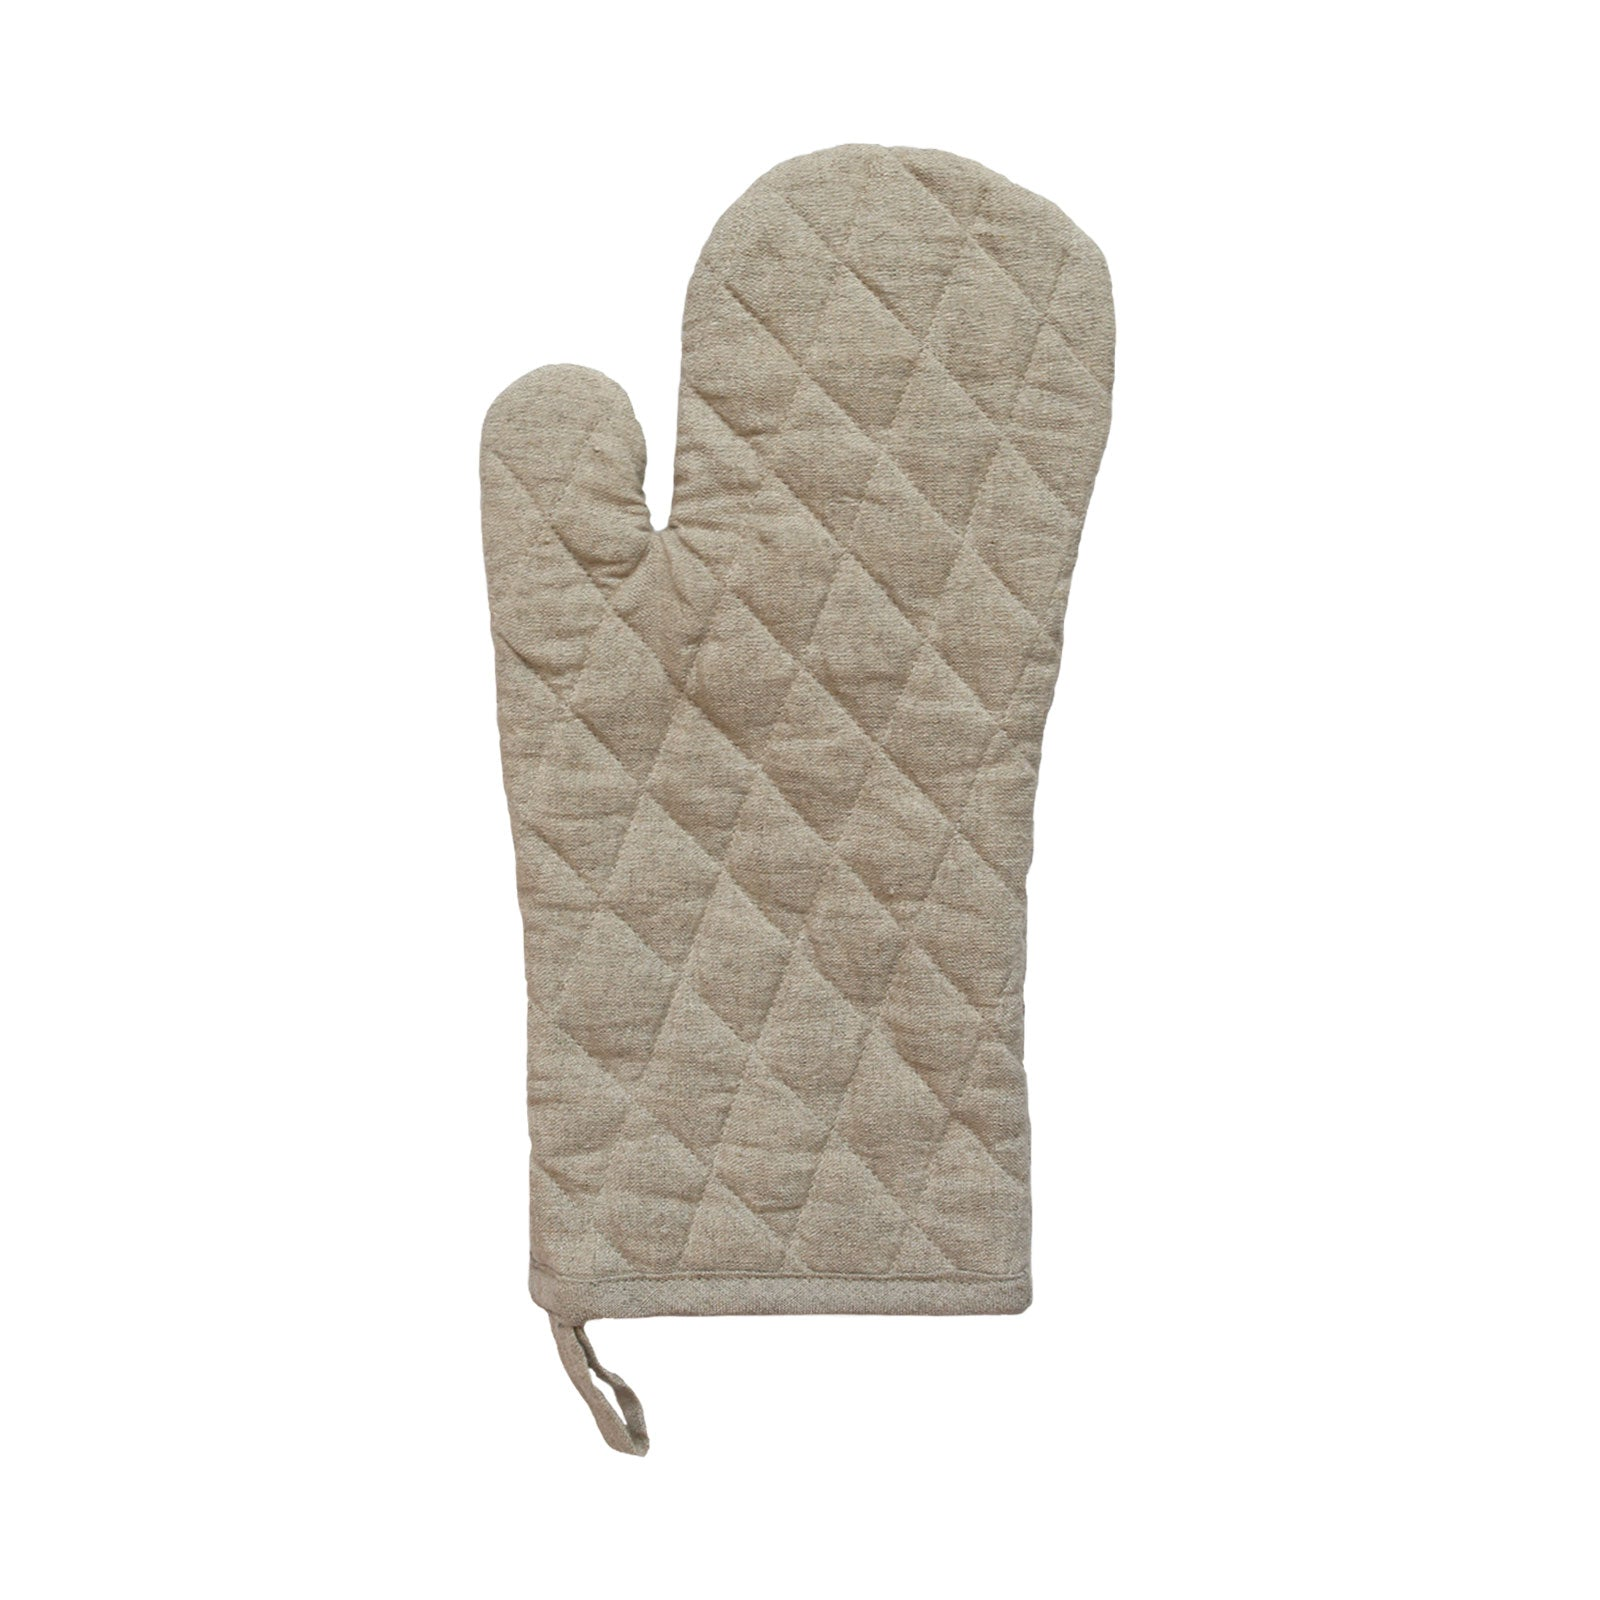 Daisy Oven Mitt in Natural Linen